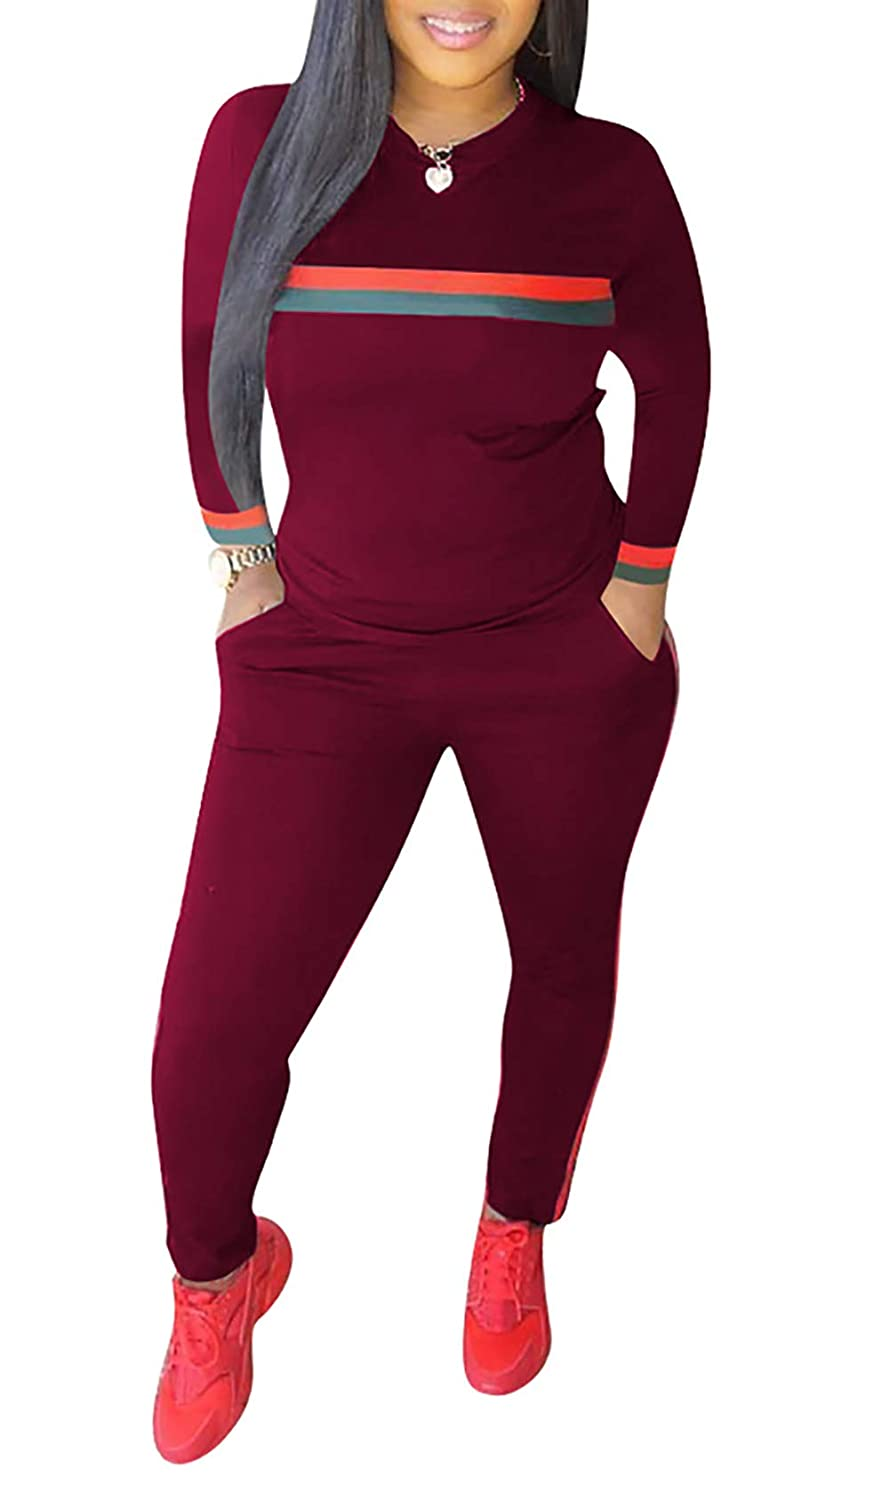 1b9ee9821a08 Amazon.com: Womens Casual Long Sleeve Bodycon Tops Sweatsuits Long Skinny  Pants Set Tracksuits Two Piece Outfits Plus Size: Clothing